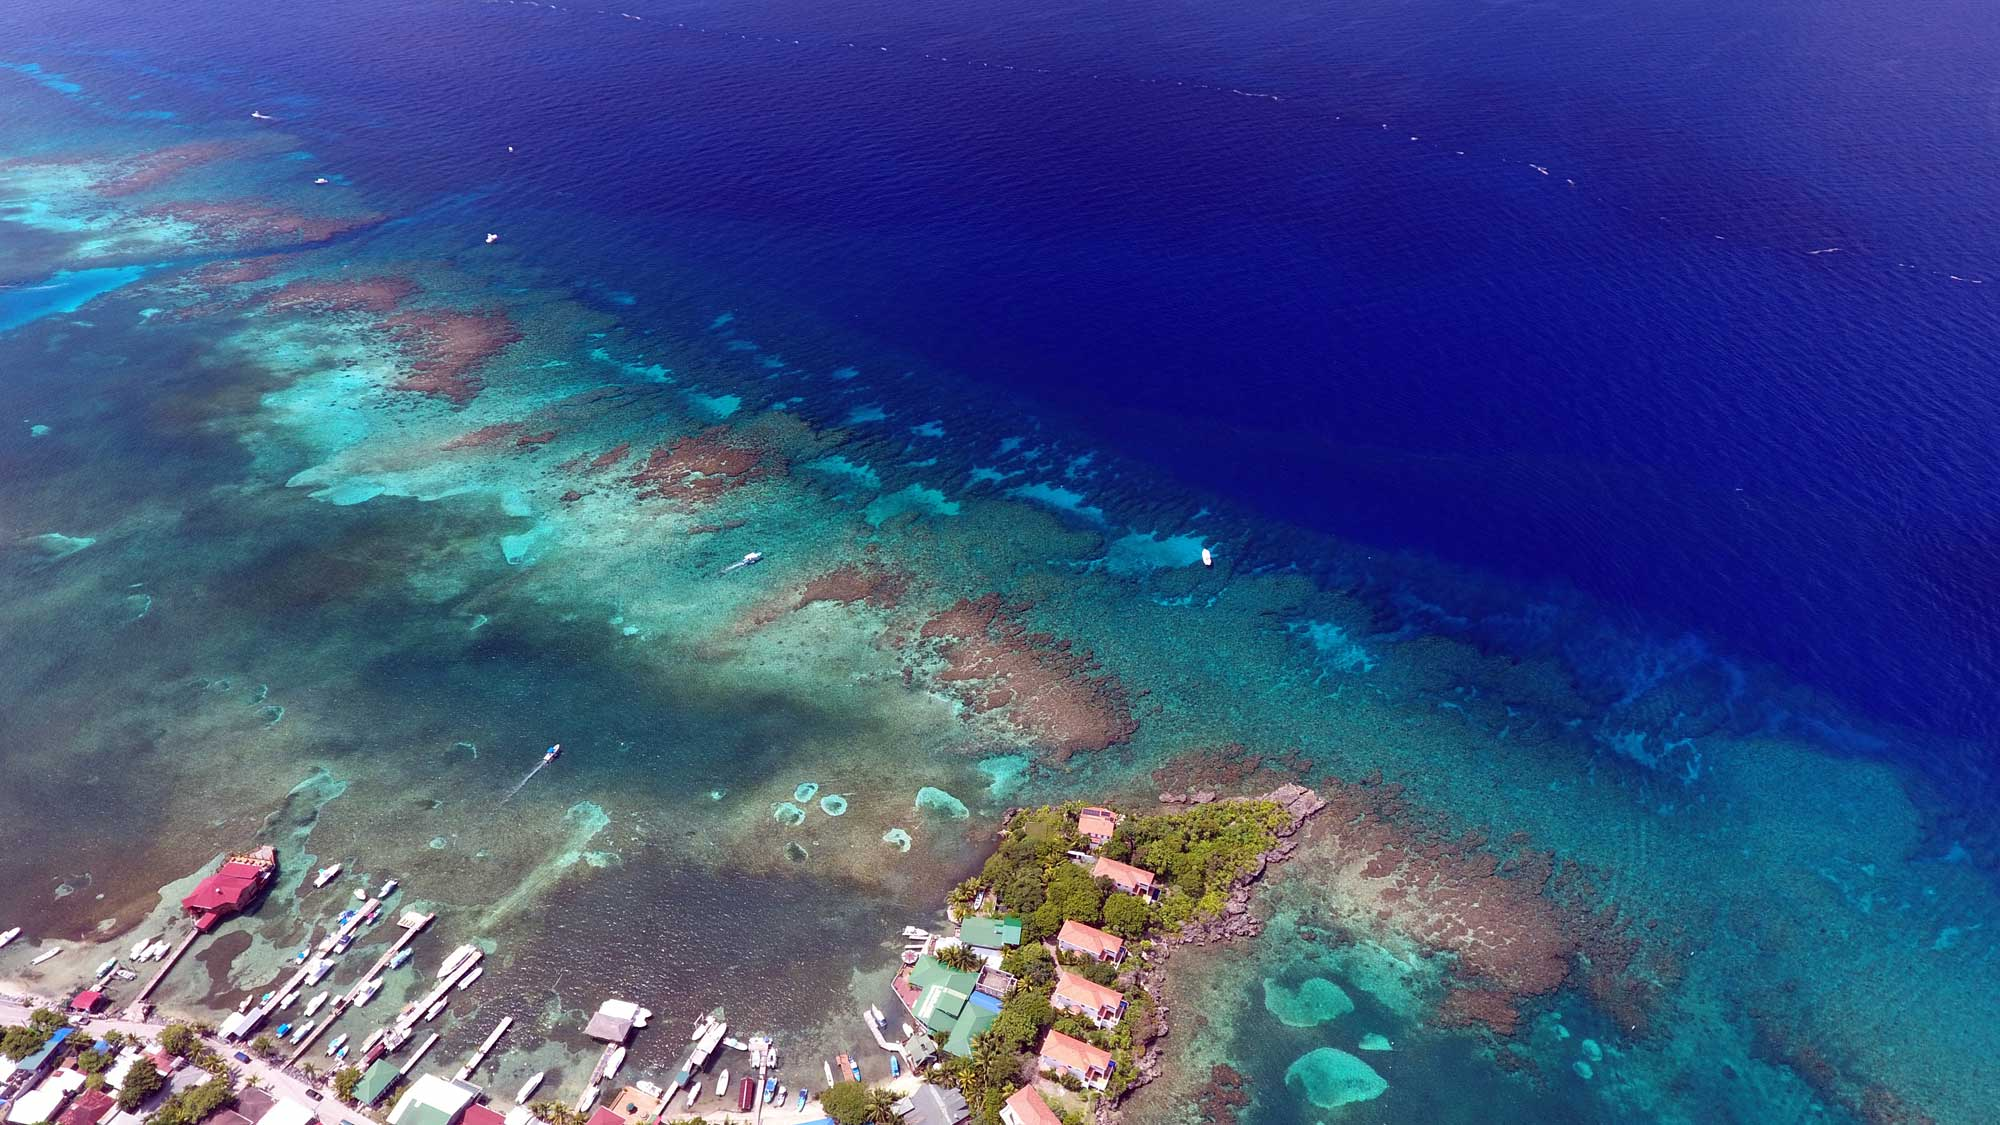 The nearest dive site to Coconut Tree Divers